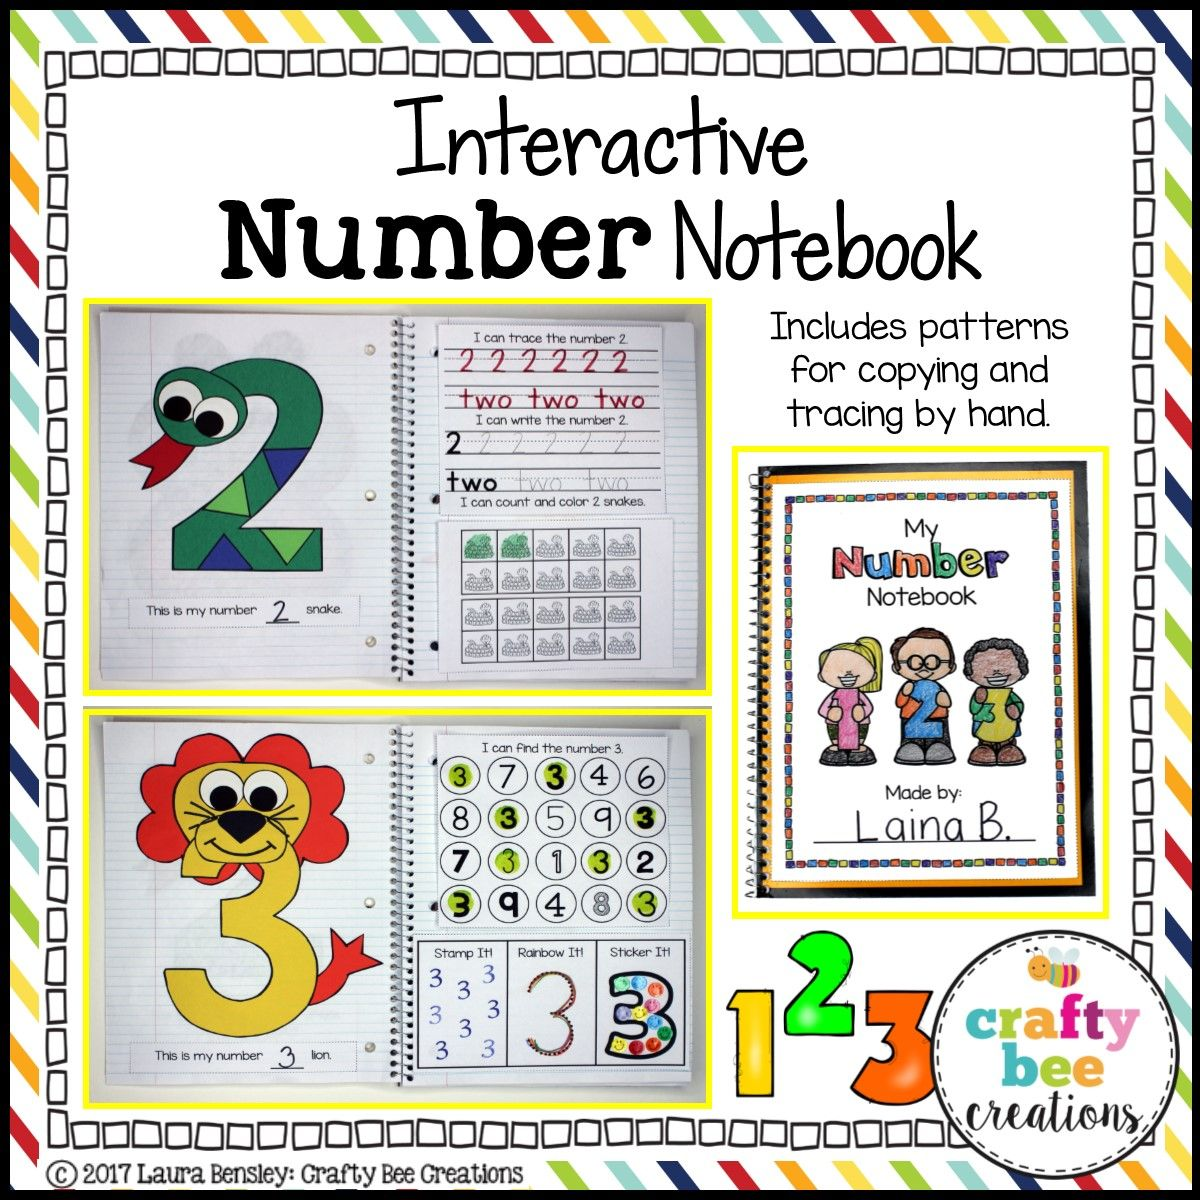 I Really Love Interactive Notebooks And How Much Fun They